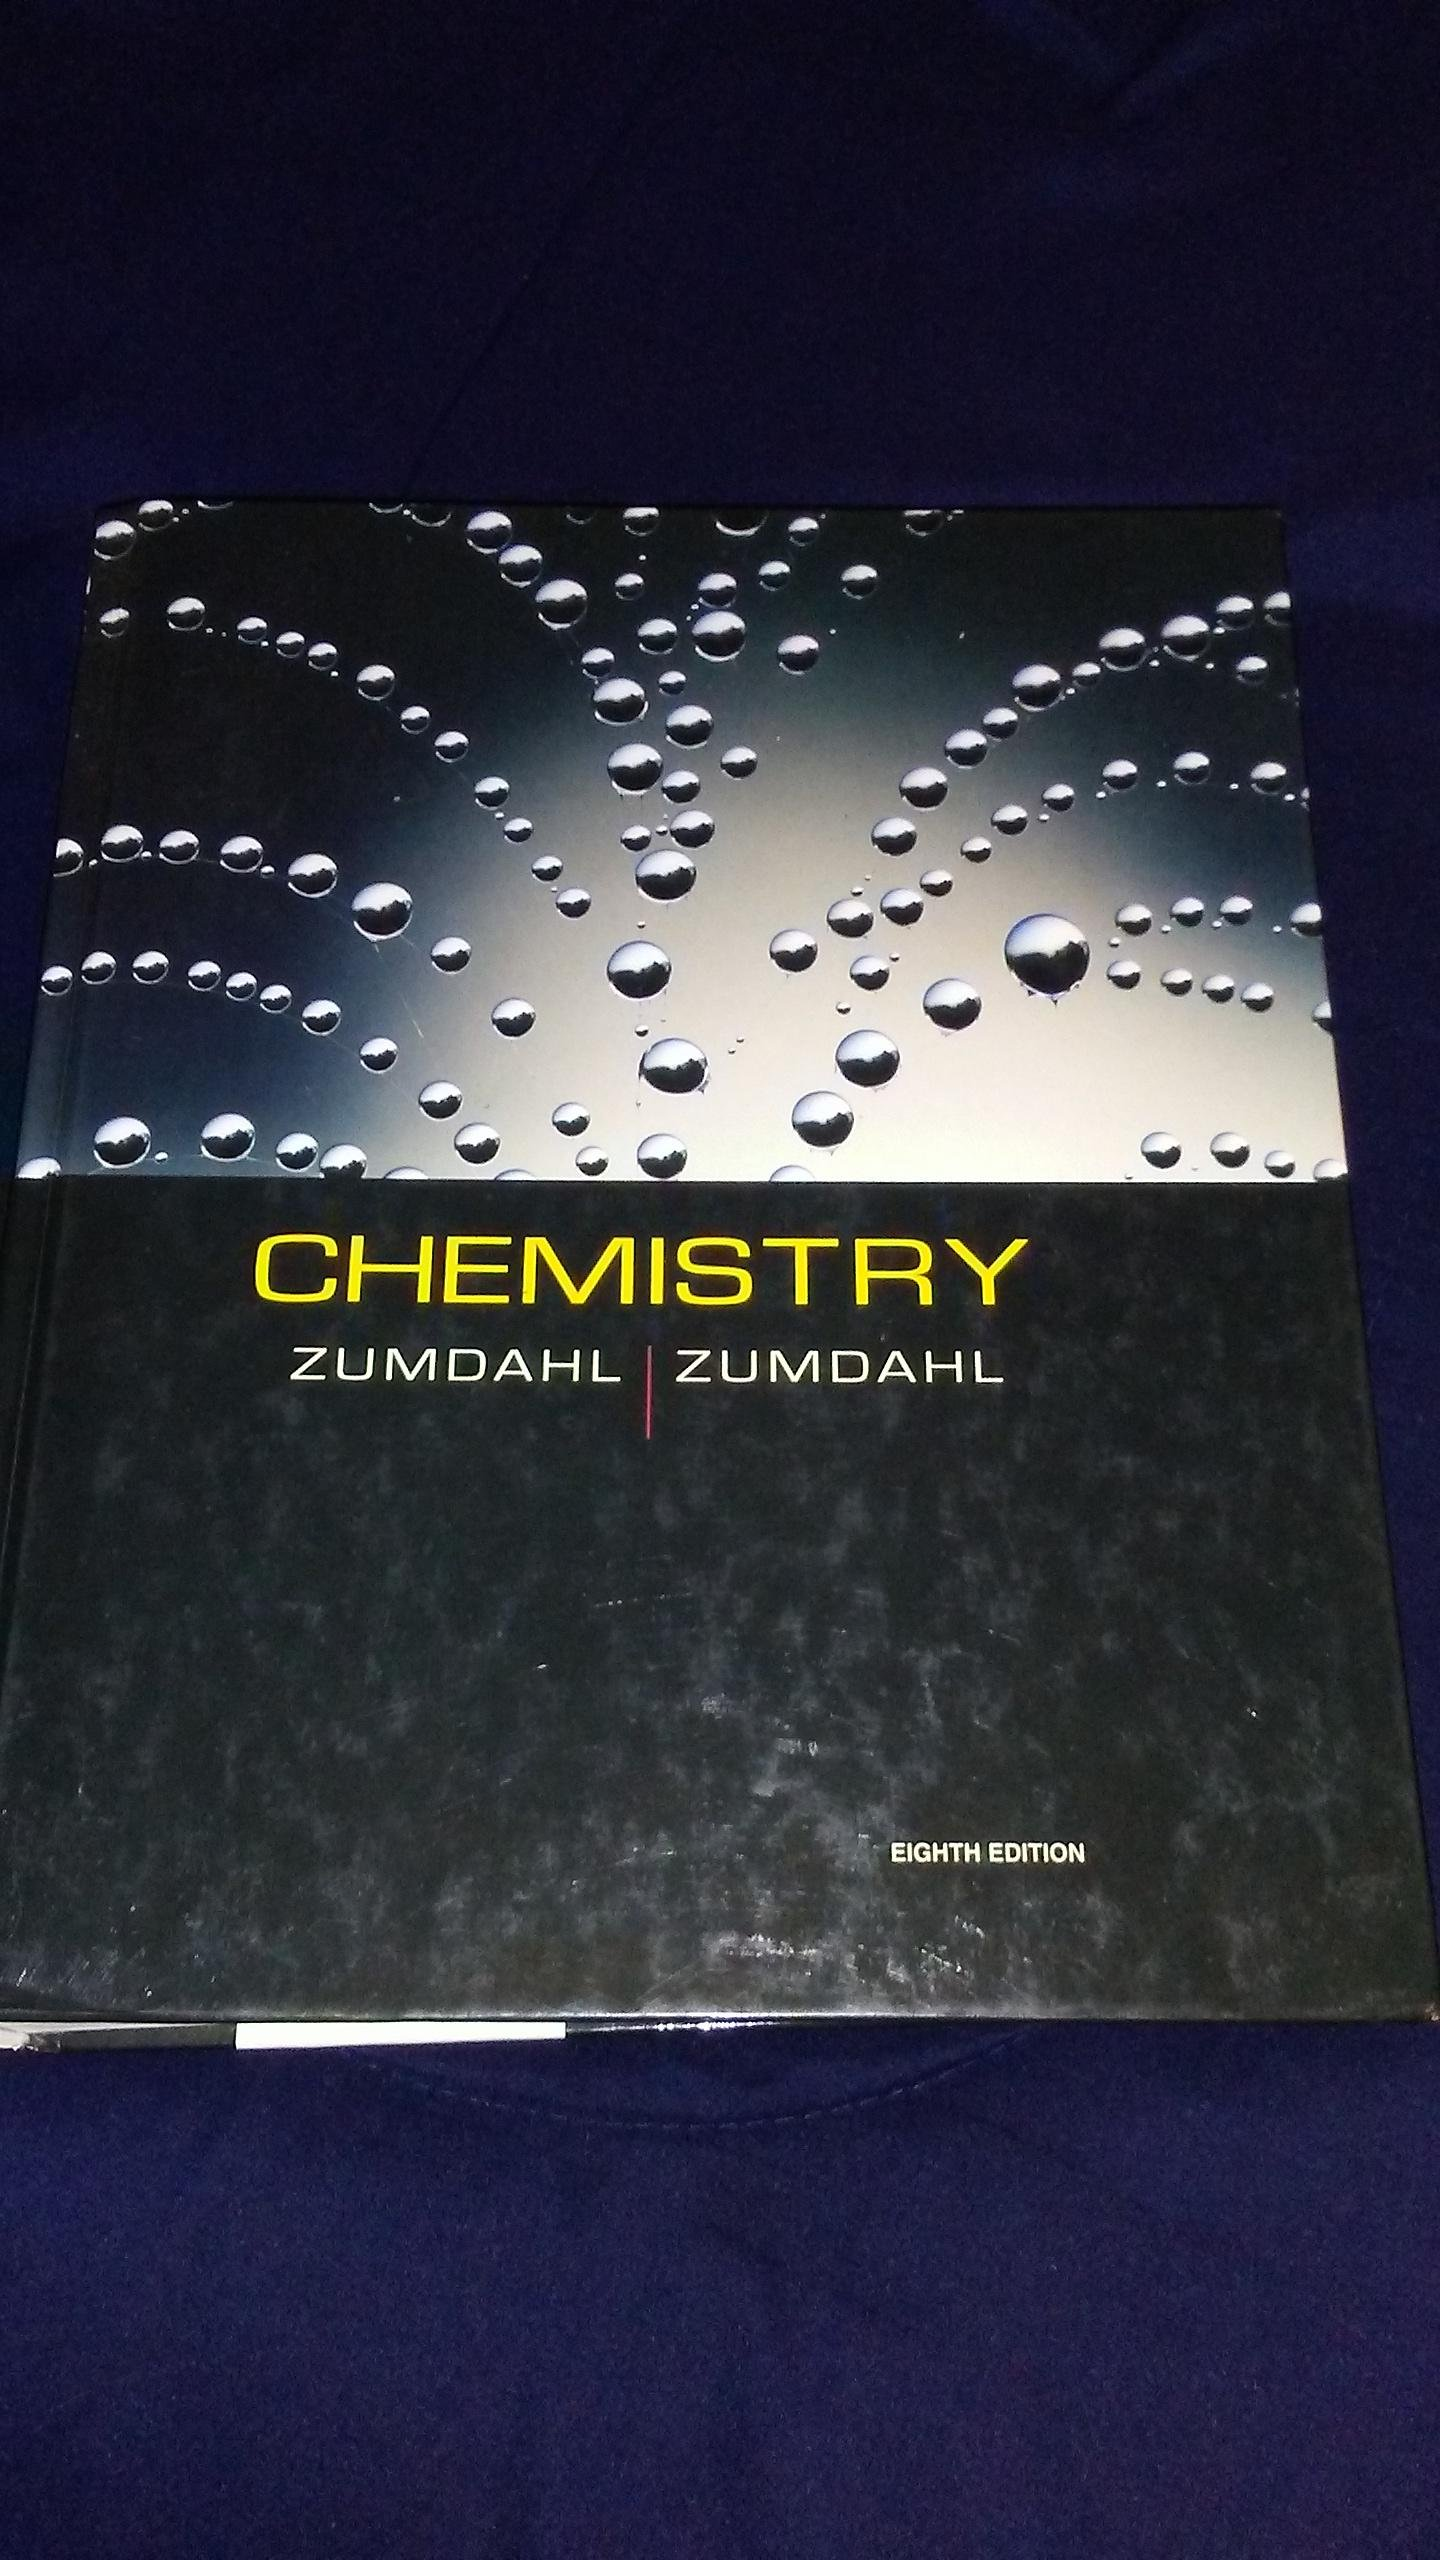 Zumdahl Chemistry 8th Edition Pdf Free Download